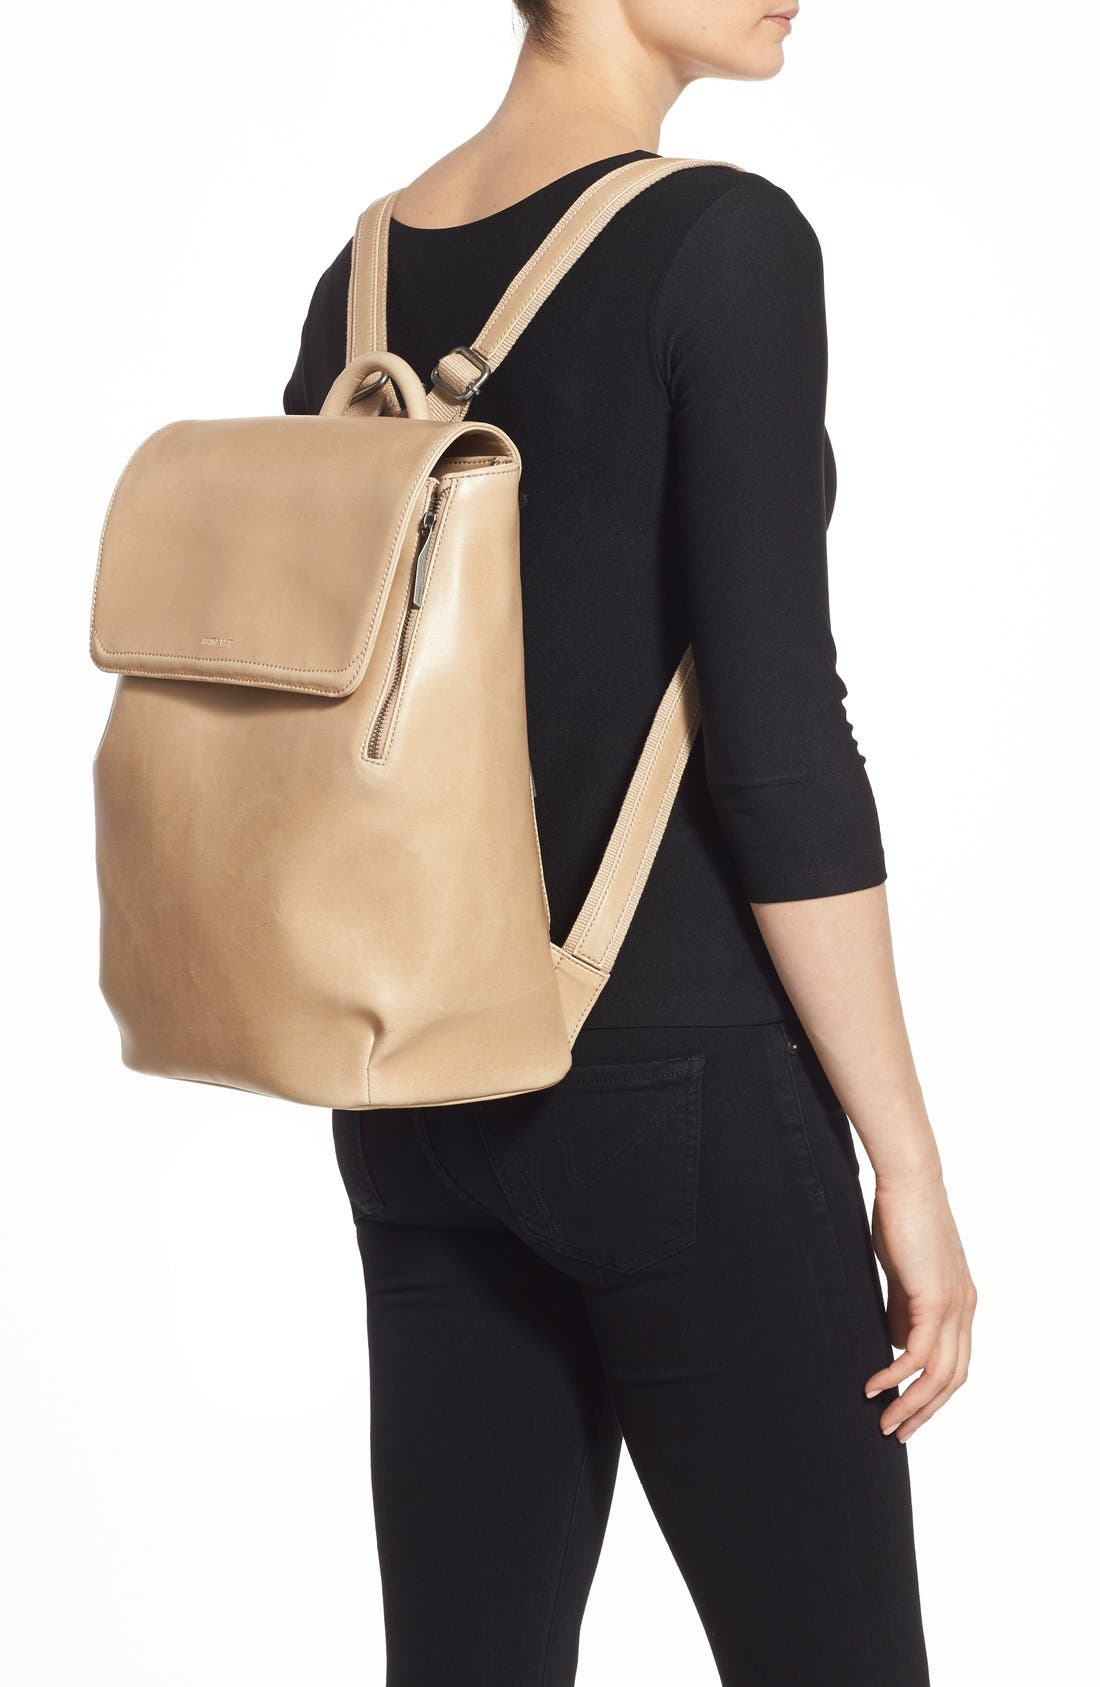 'Fabi' Faux Leather Laptop Backpack,                             Alternate thumbnail 2, color,                             Cardamom